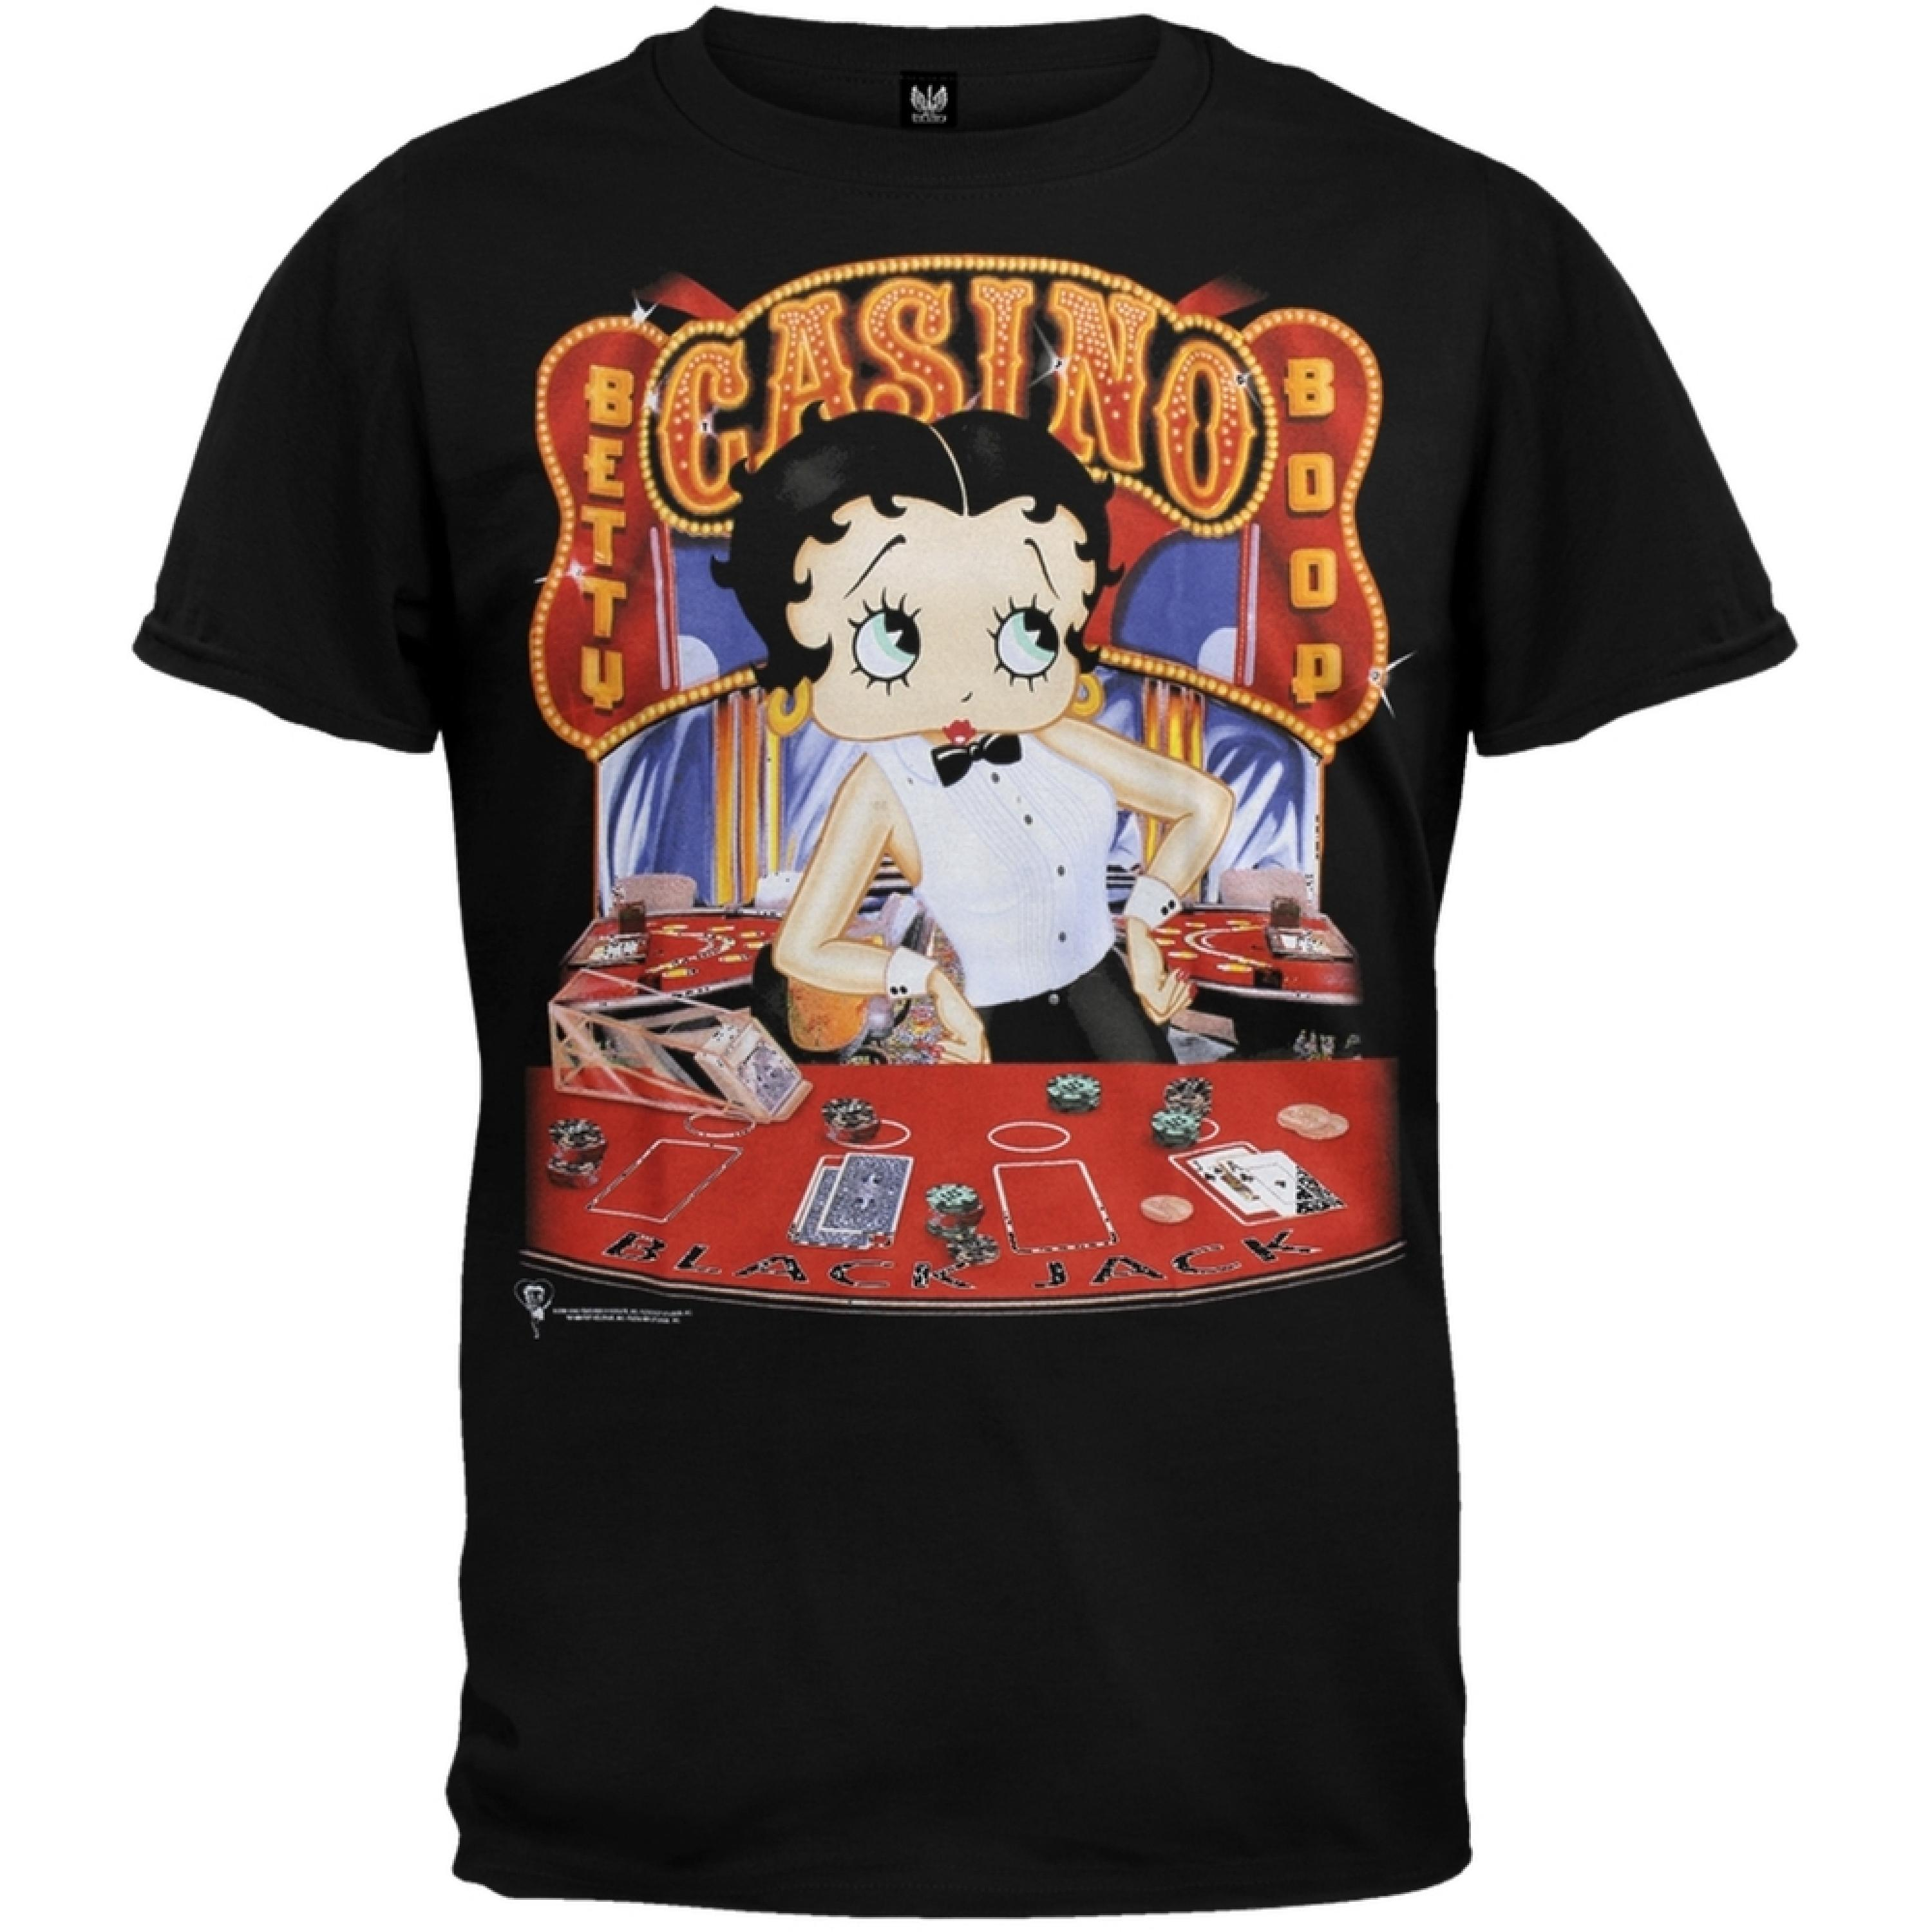 Betty Boop - Black Jack T-Shirt